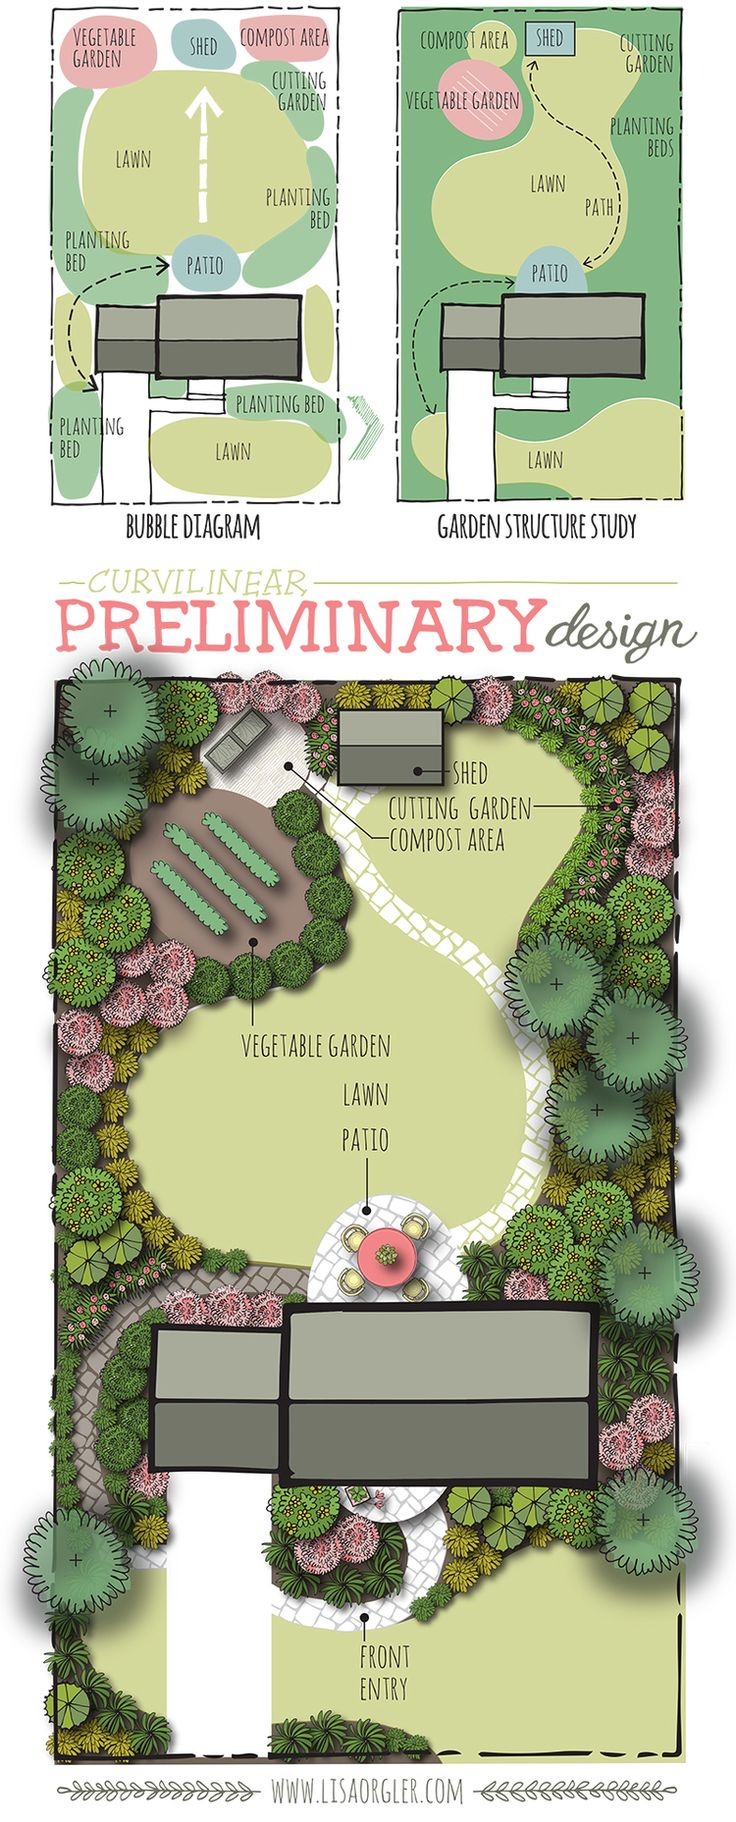 About a year ago I did a series of posts that showcased three parts of the design process. For those that struggle with how to start their landscape design this process is amazing. The idea is to arrange your spaces conceptually with bubbles, move those bubbles towards strong shapes, then finally place plant materials to reinforce your outdoor rooms. Click on the steps below to learn about them in more detail. 1. Bubble (or Functional) Diagrams 2. Garden Structure Studies 3. Prelimin...